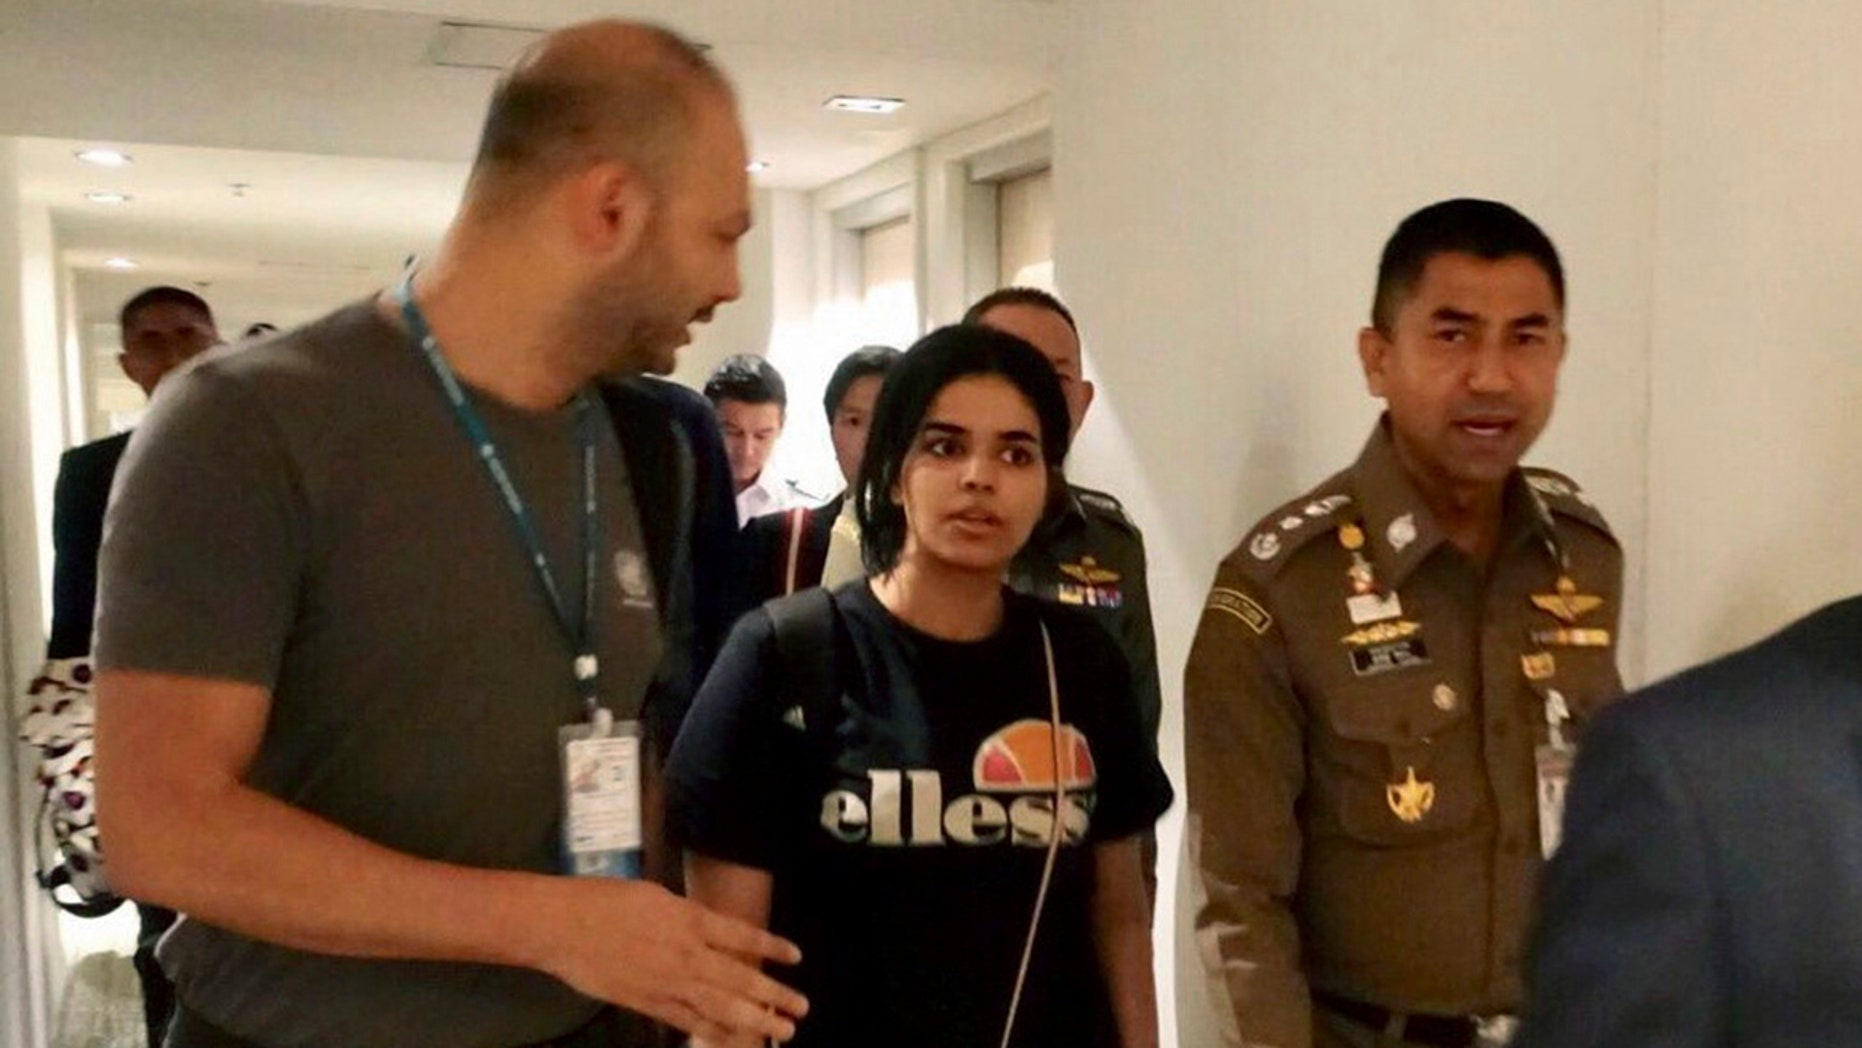 Saudi woman Rahaf Mohammed Alqunun moments before leaving the Suvarnabhumi Airport in Bangkok Monday. The 18-year-old began posting on Twitter late Saturday after her passport was taken away when she arrived on a flight from Kuwait. (Immigration police via AP)